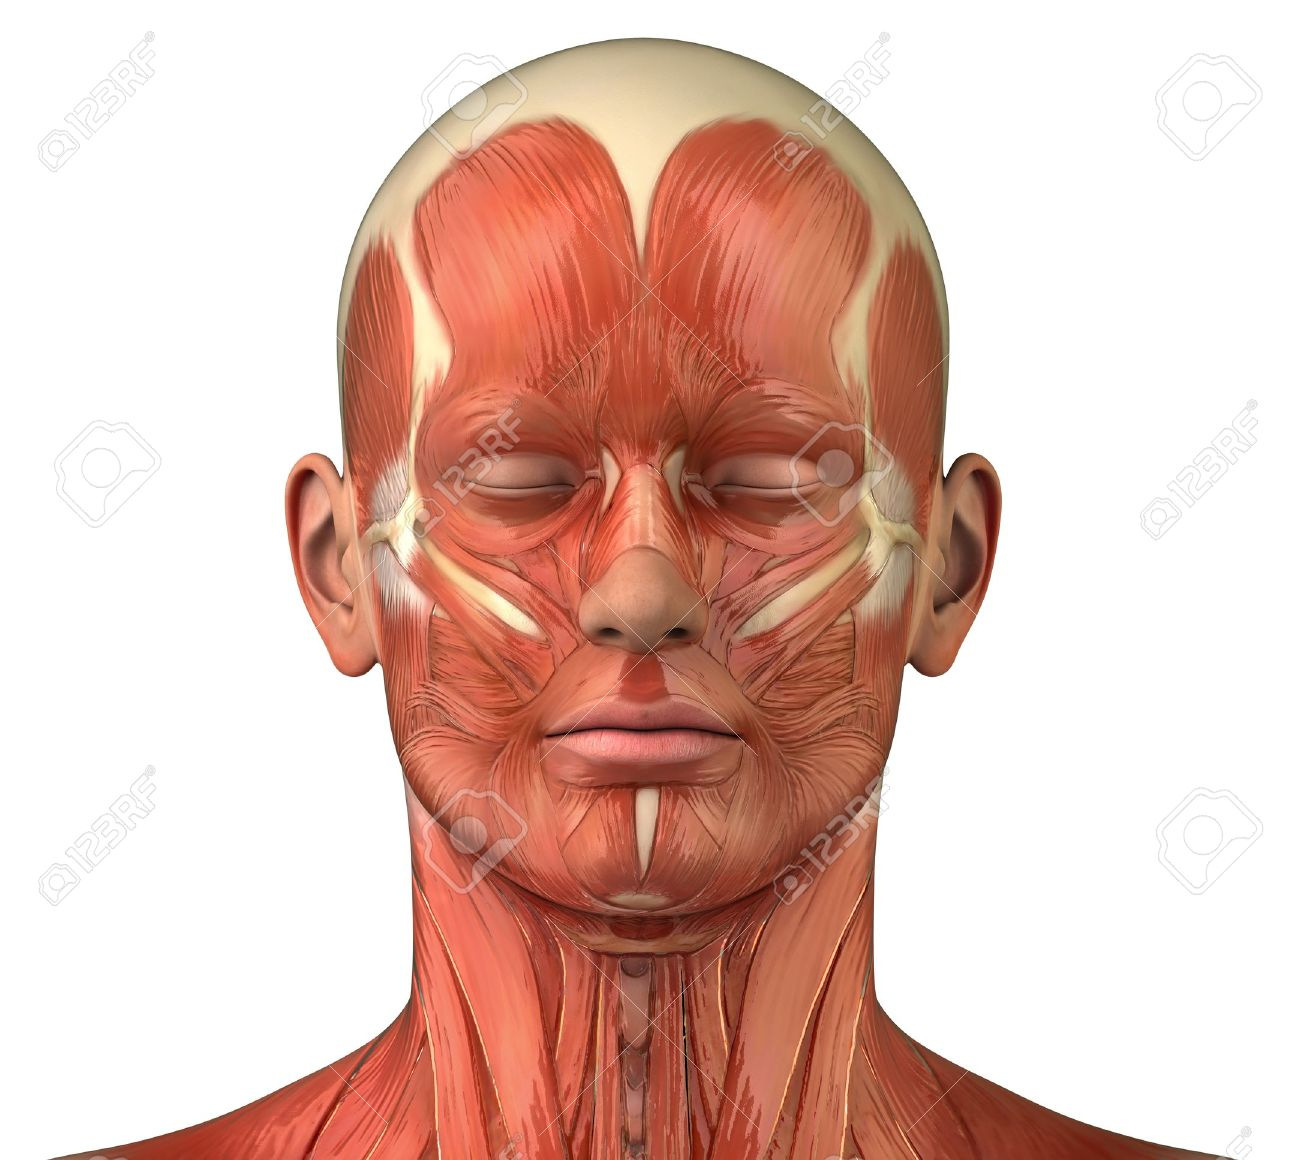 Anatomy Of Head Muscles Stock Photo Picture And Royalty Free Image